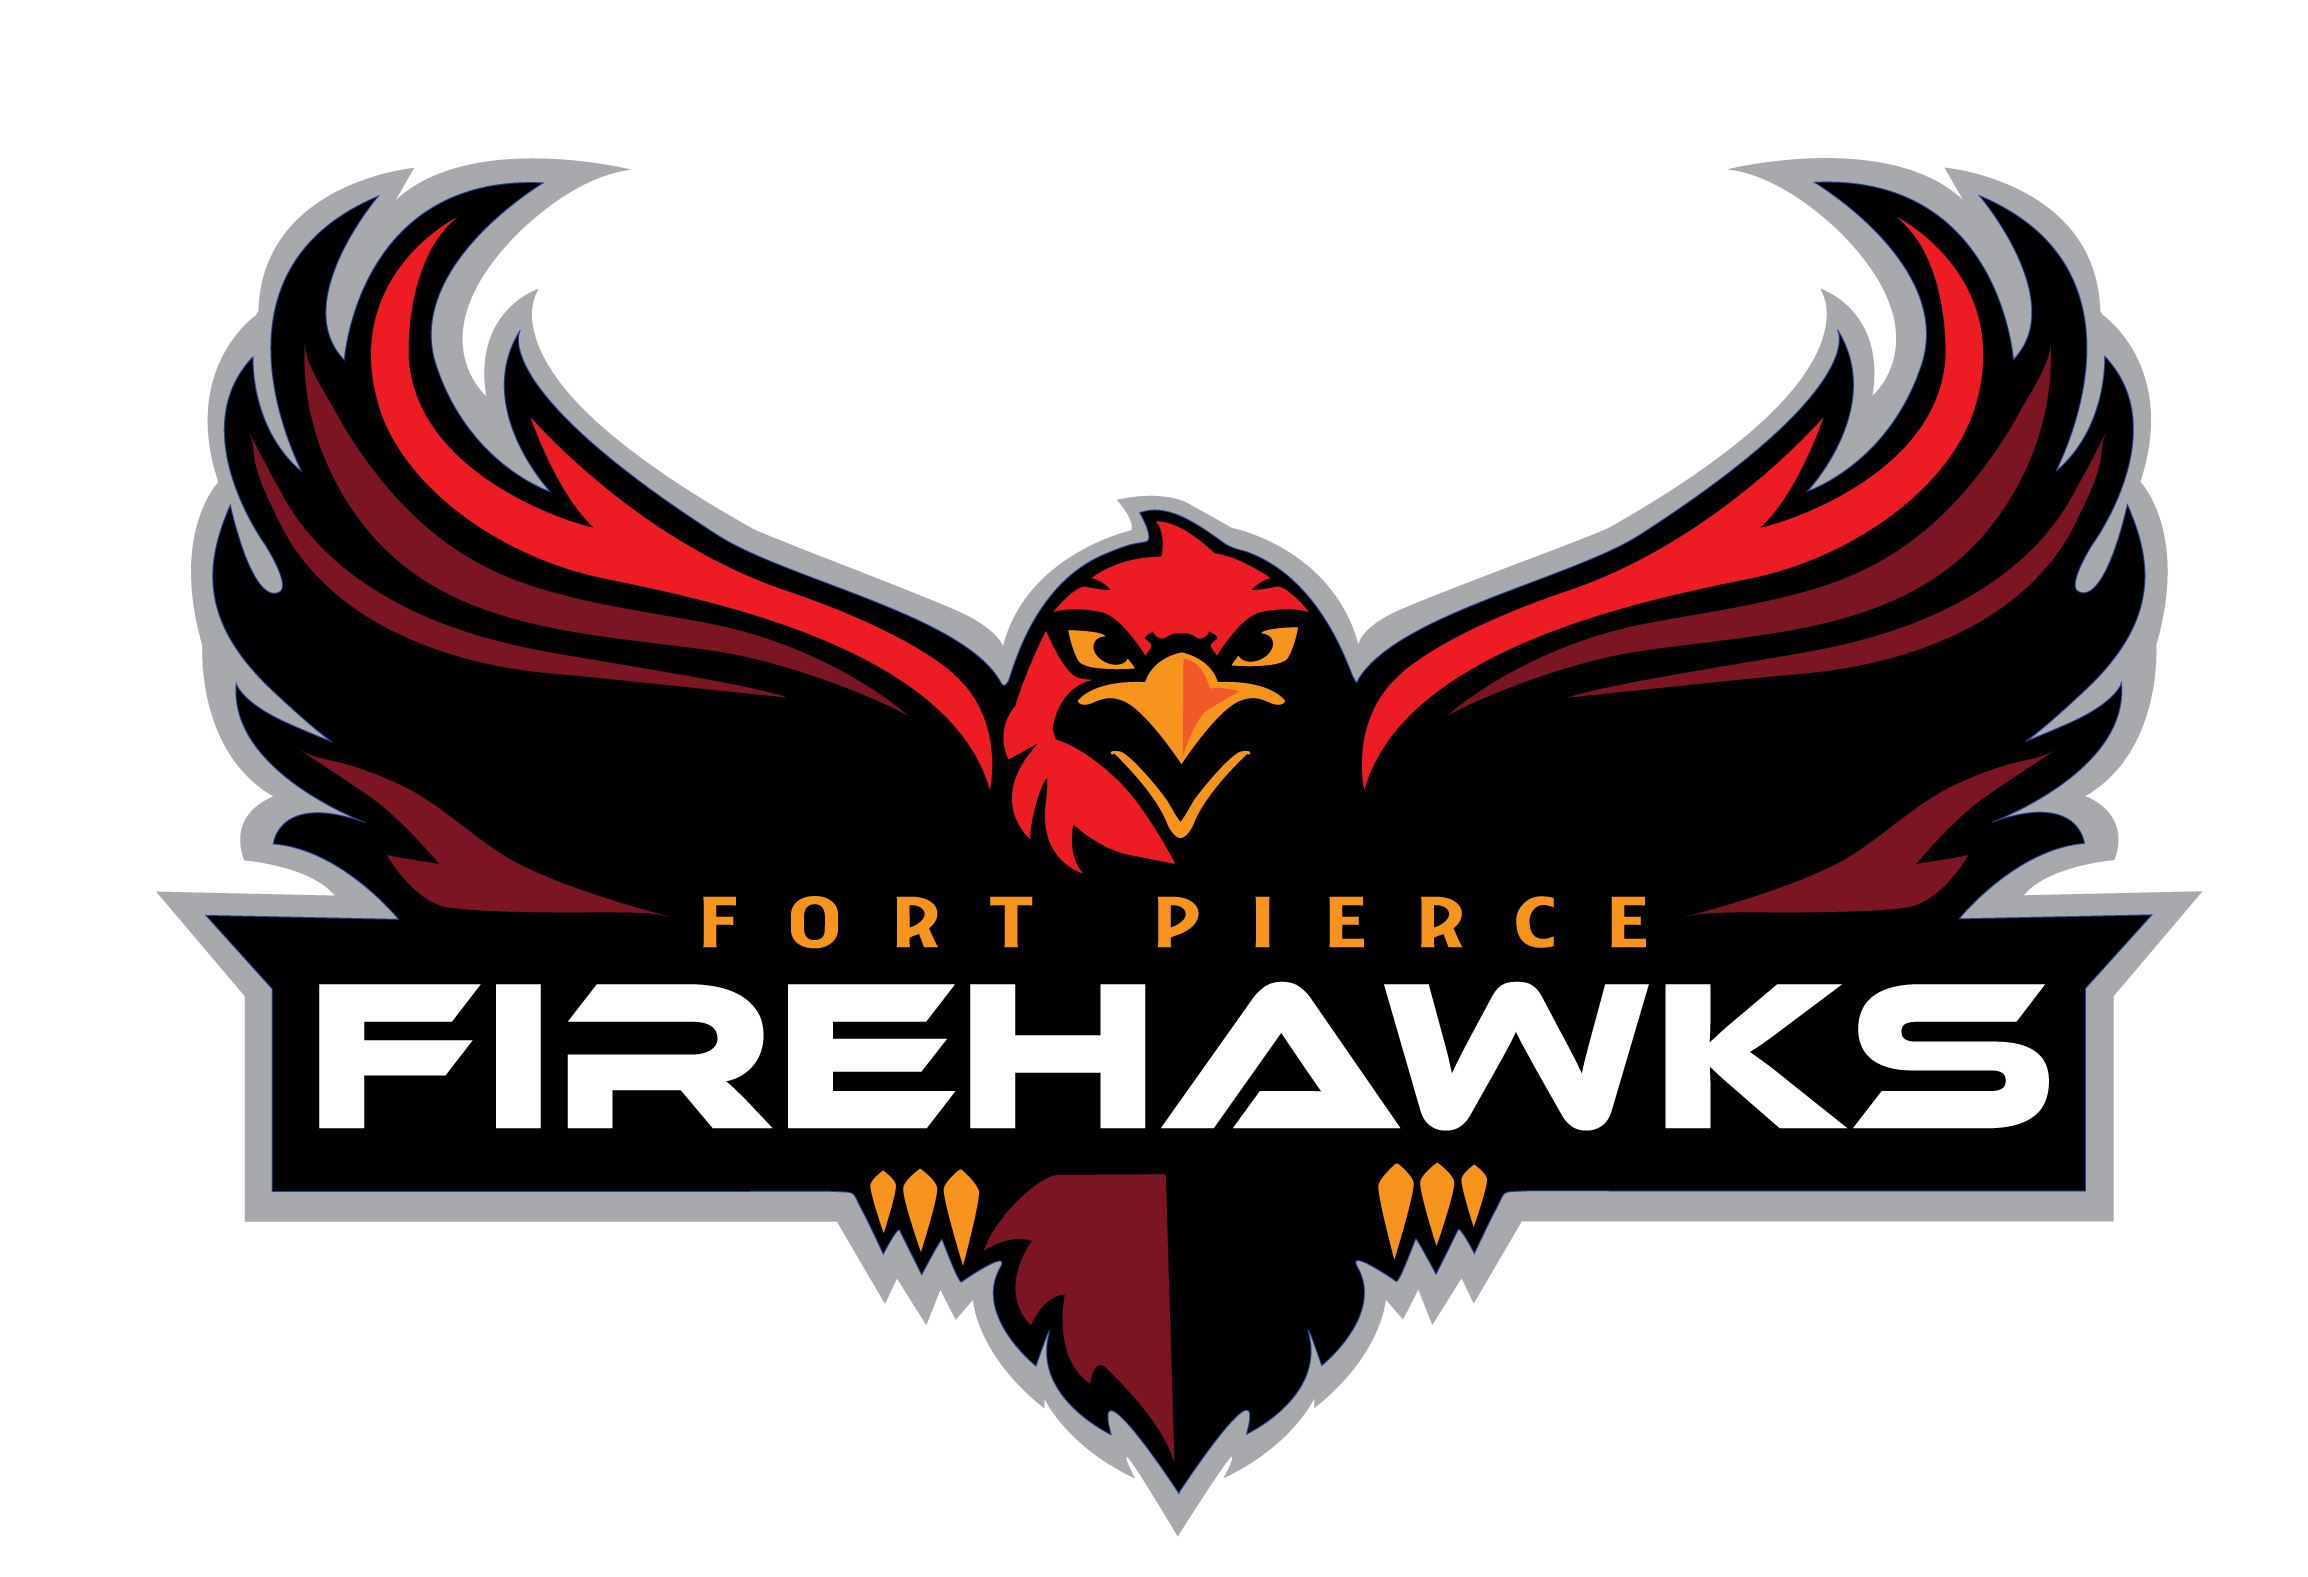 Fort Pierce Firehawks